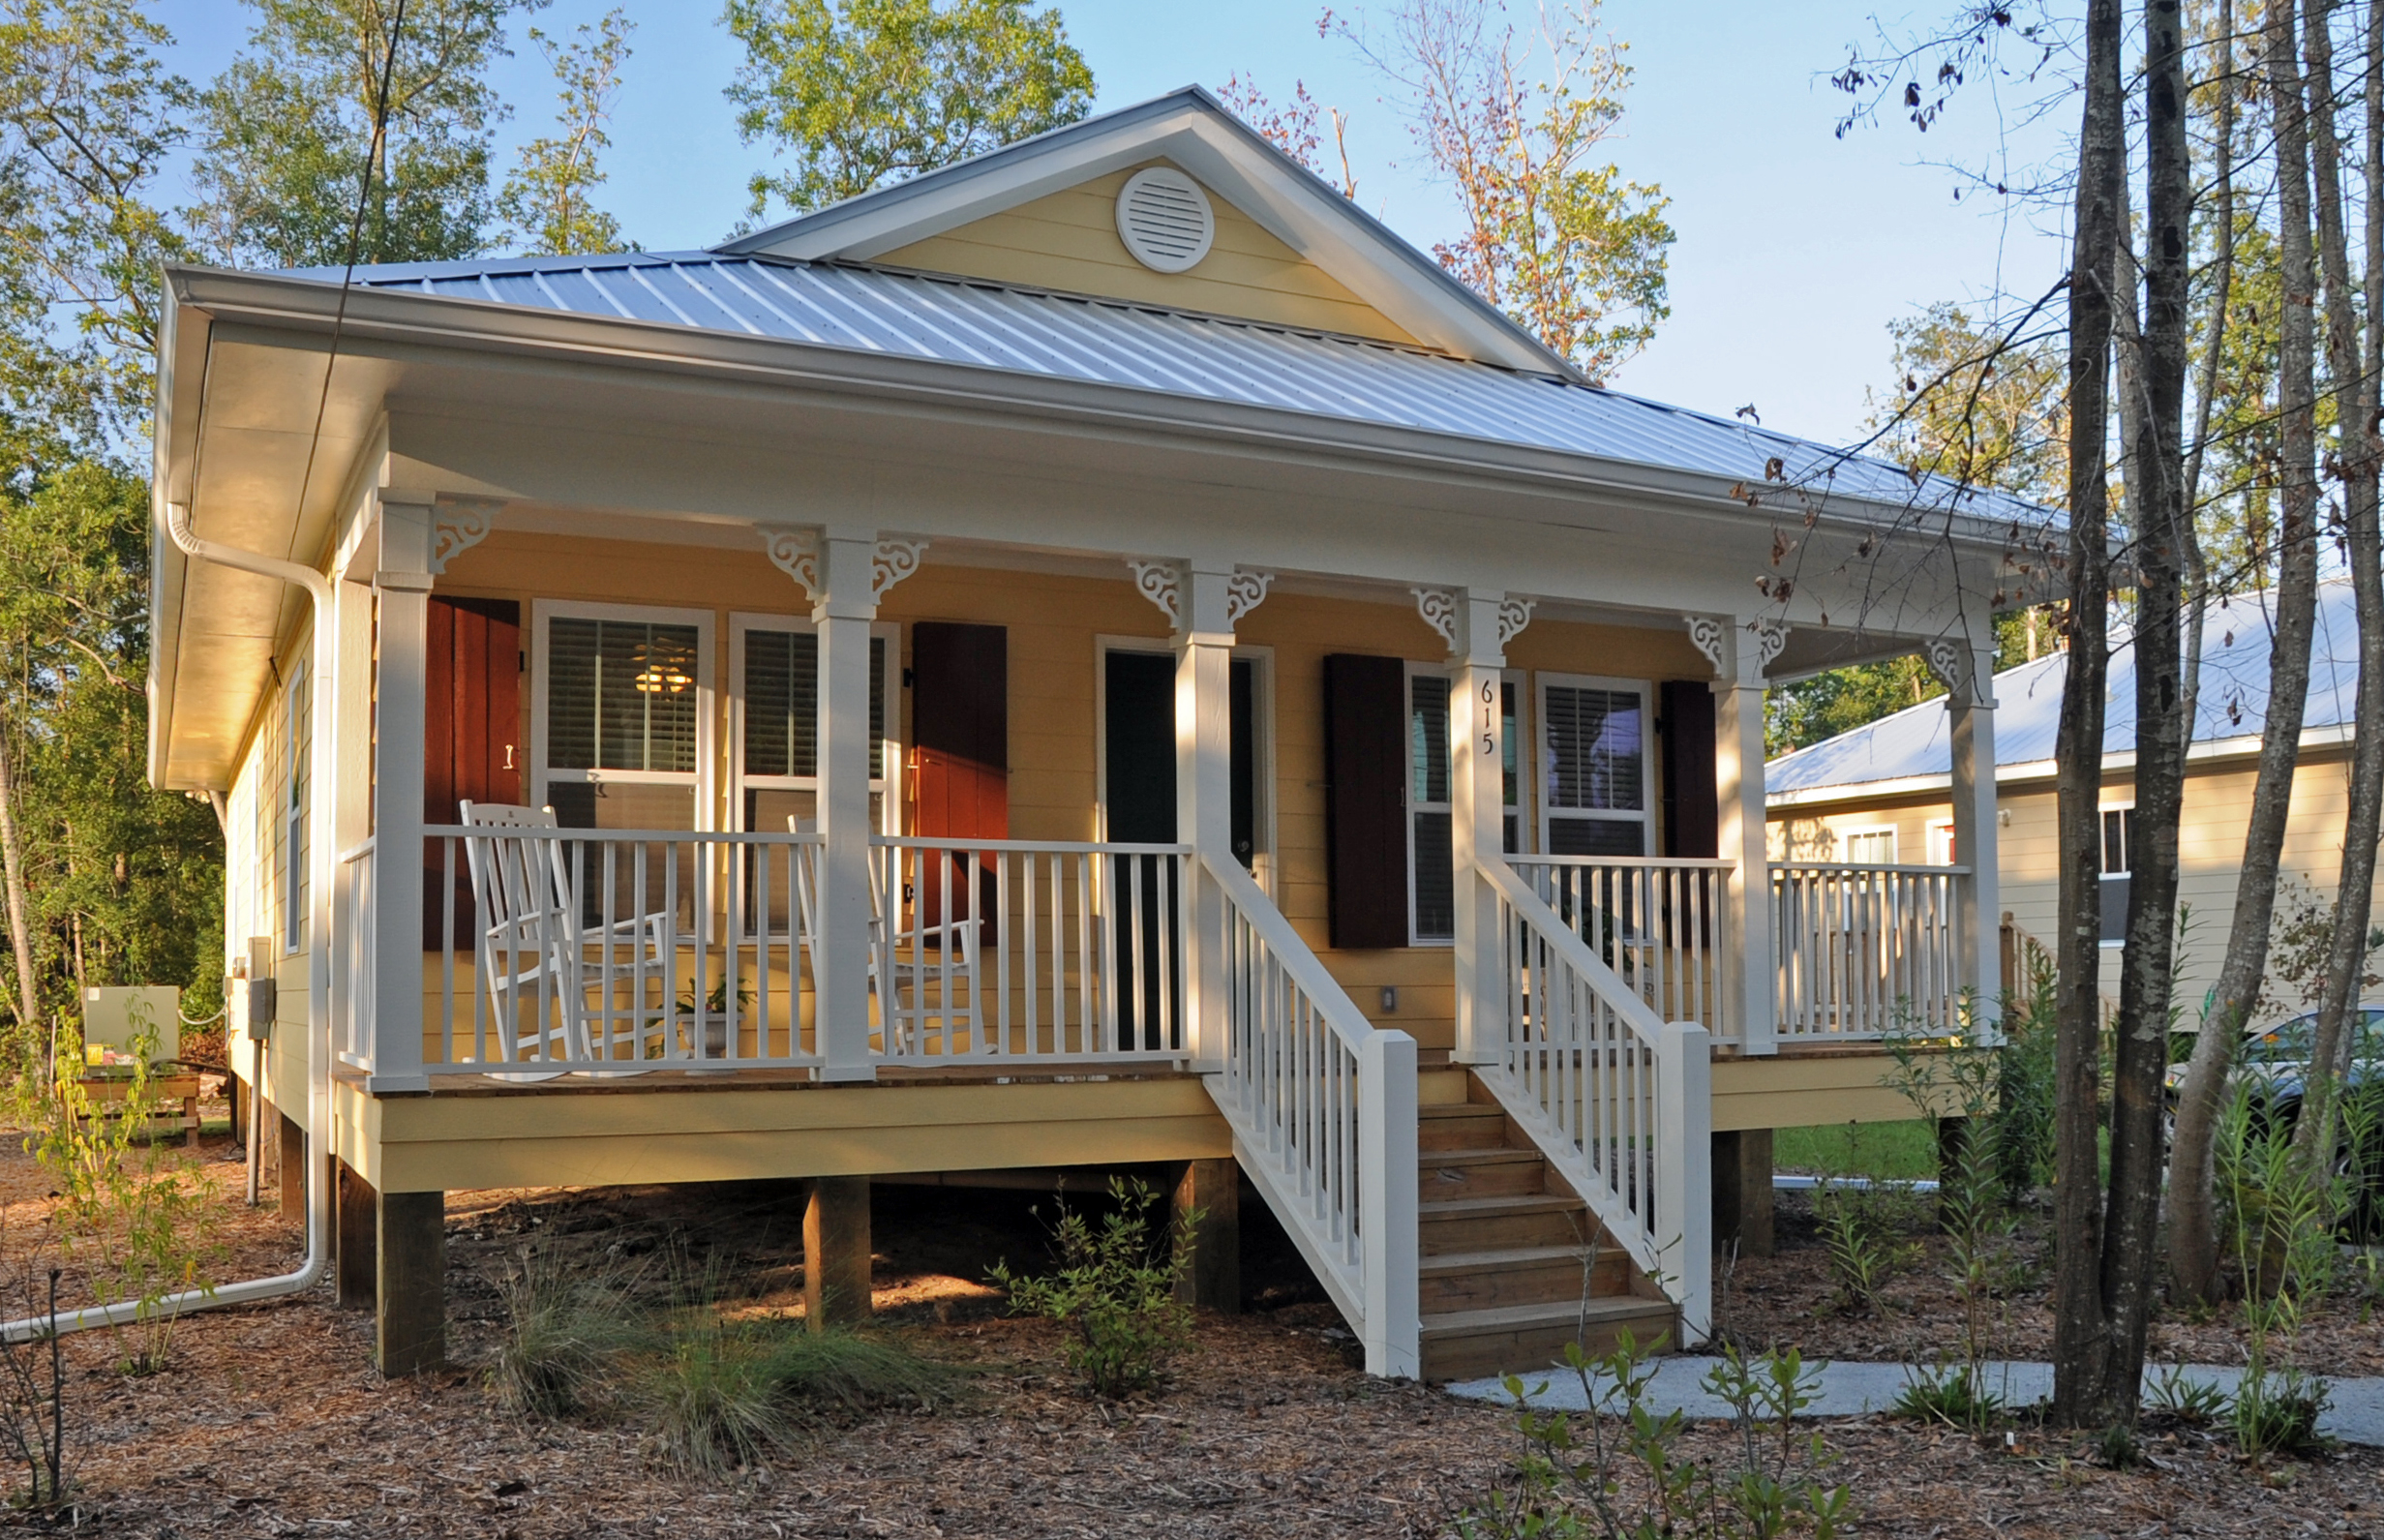 Bay waveland habitat for humanity recognized as affiliate of the year for the second consecutive - House habitat ...